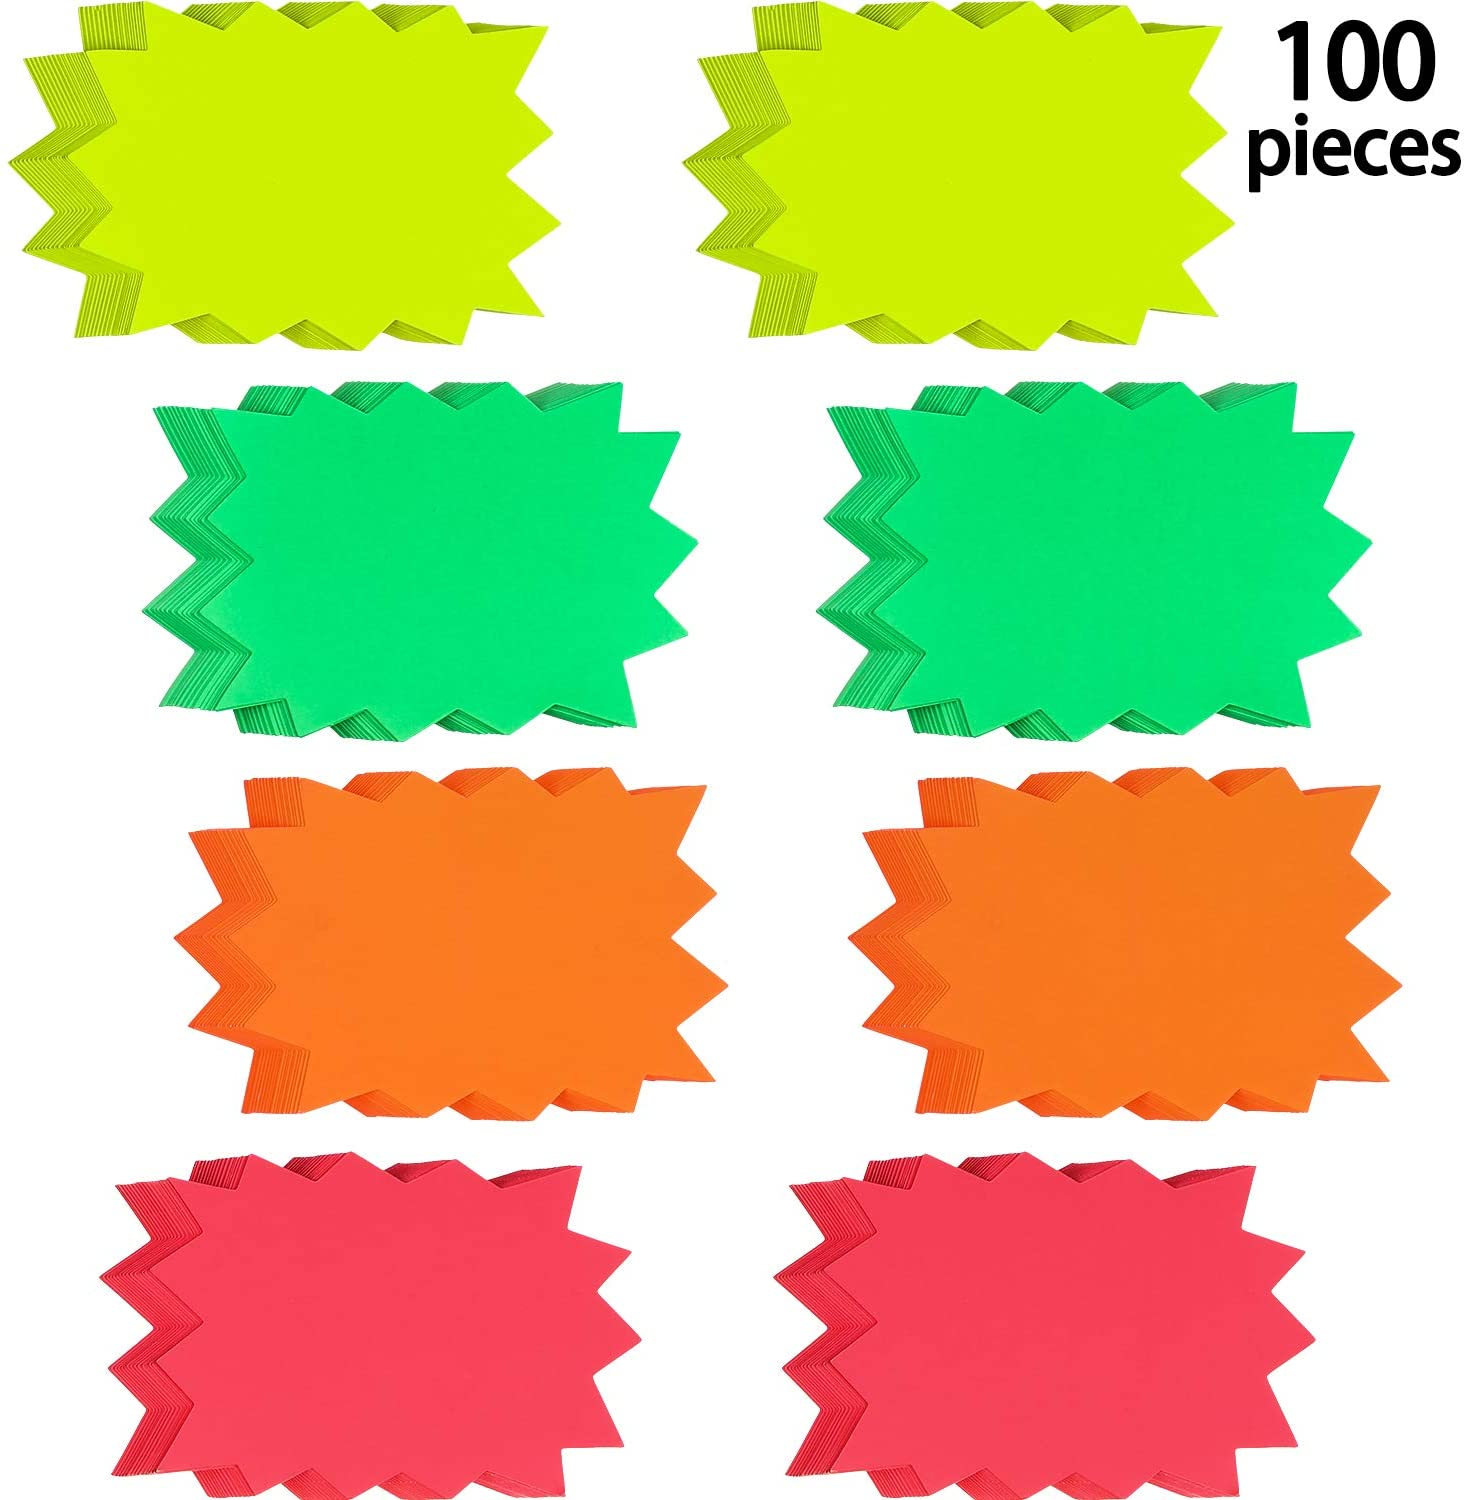 100 Pieces Starburst Signs Star Burst Signs Fluorescent Neon Paper for Retail Store, 4 Bright Colors (3 x 4.1 Inches)